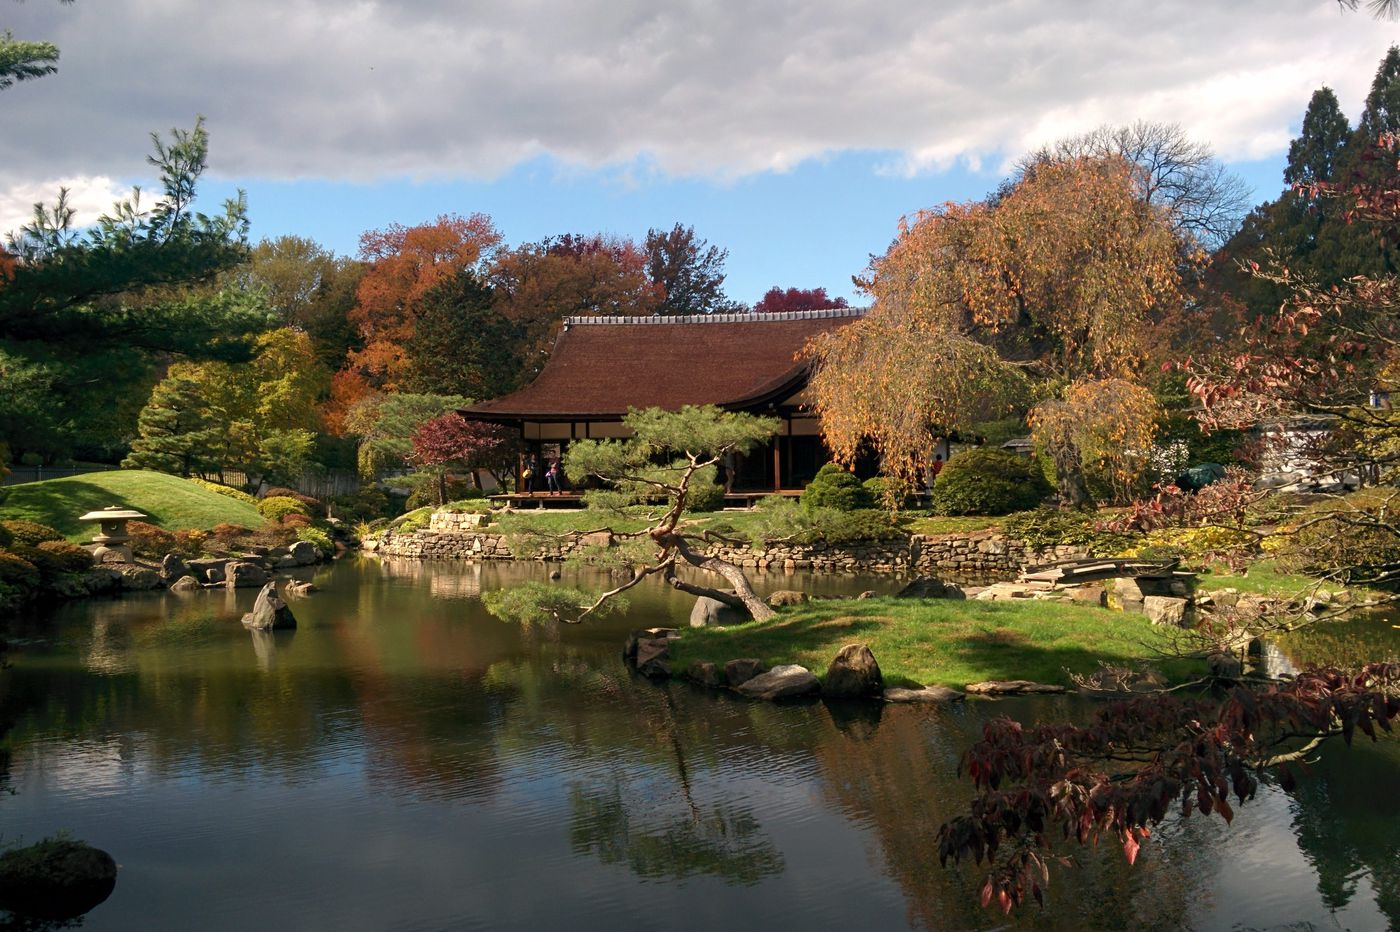 Celebrate Shofuso's 60th anniversary and Japanese culture across the Philadelphia area